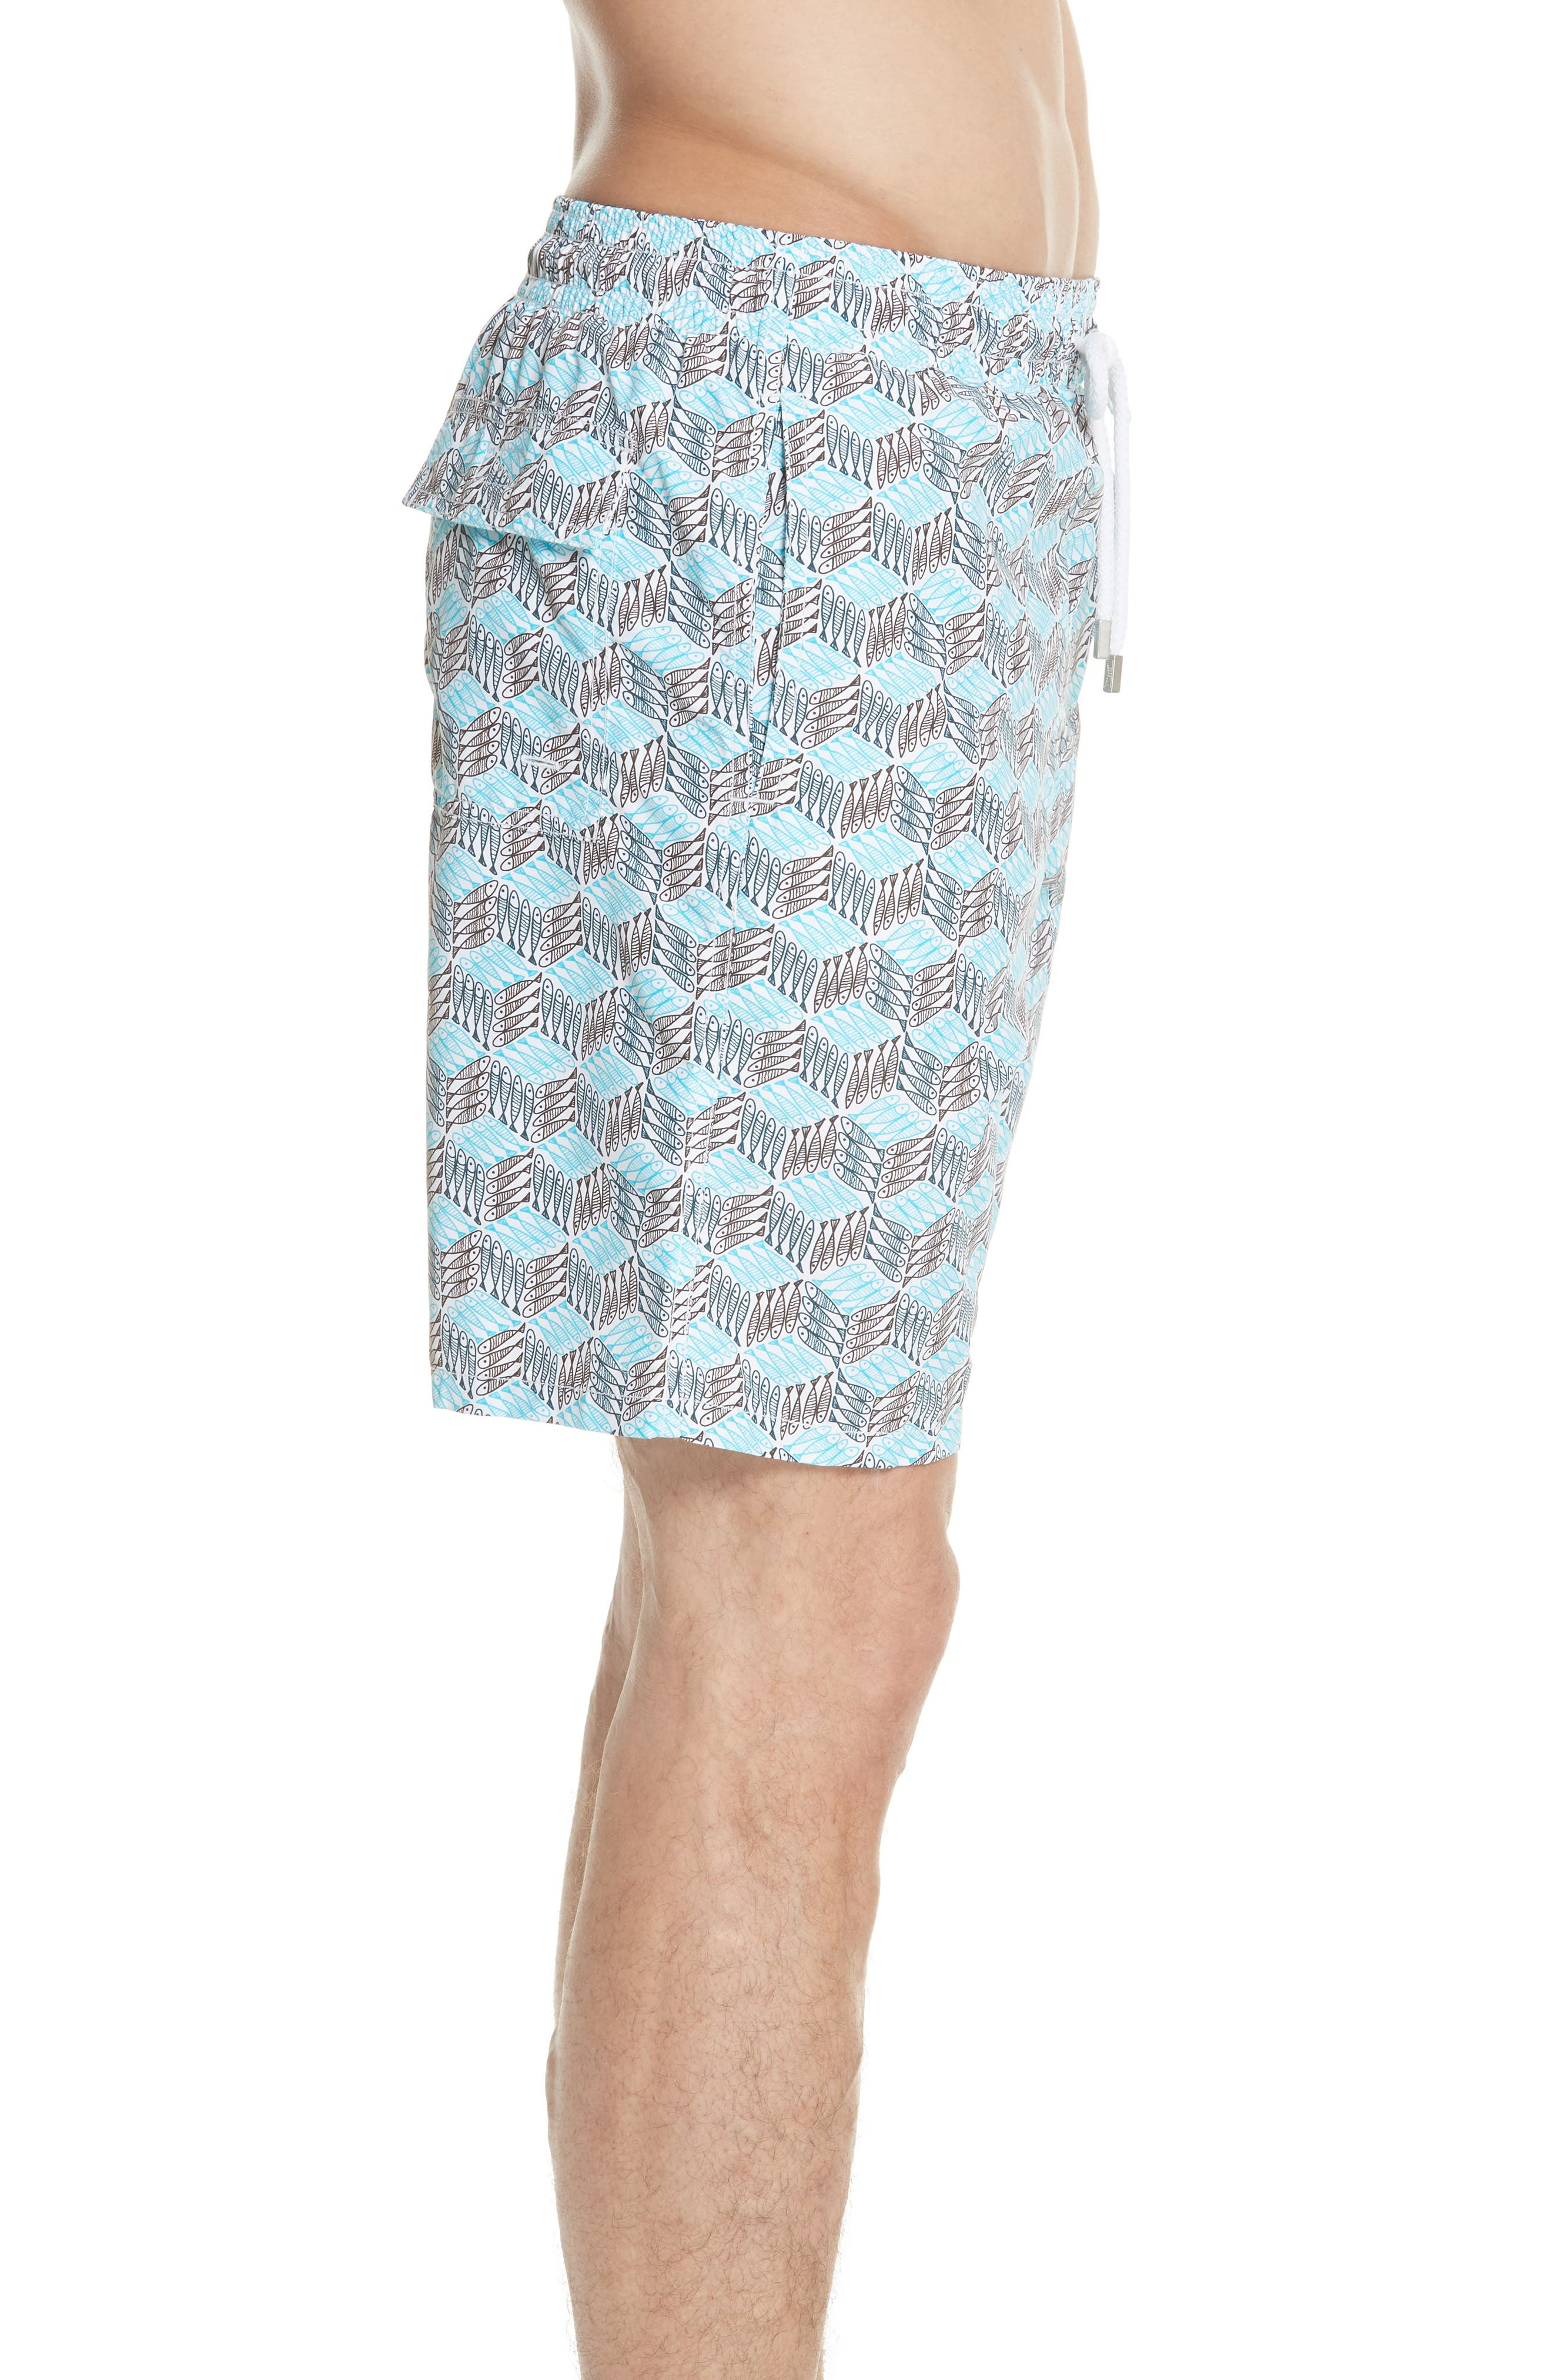 Fishes Cube Print Swim Trunks,                             Alternate thumbnail 3, color,                             AZURE